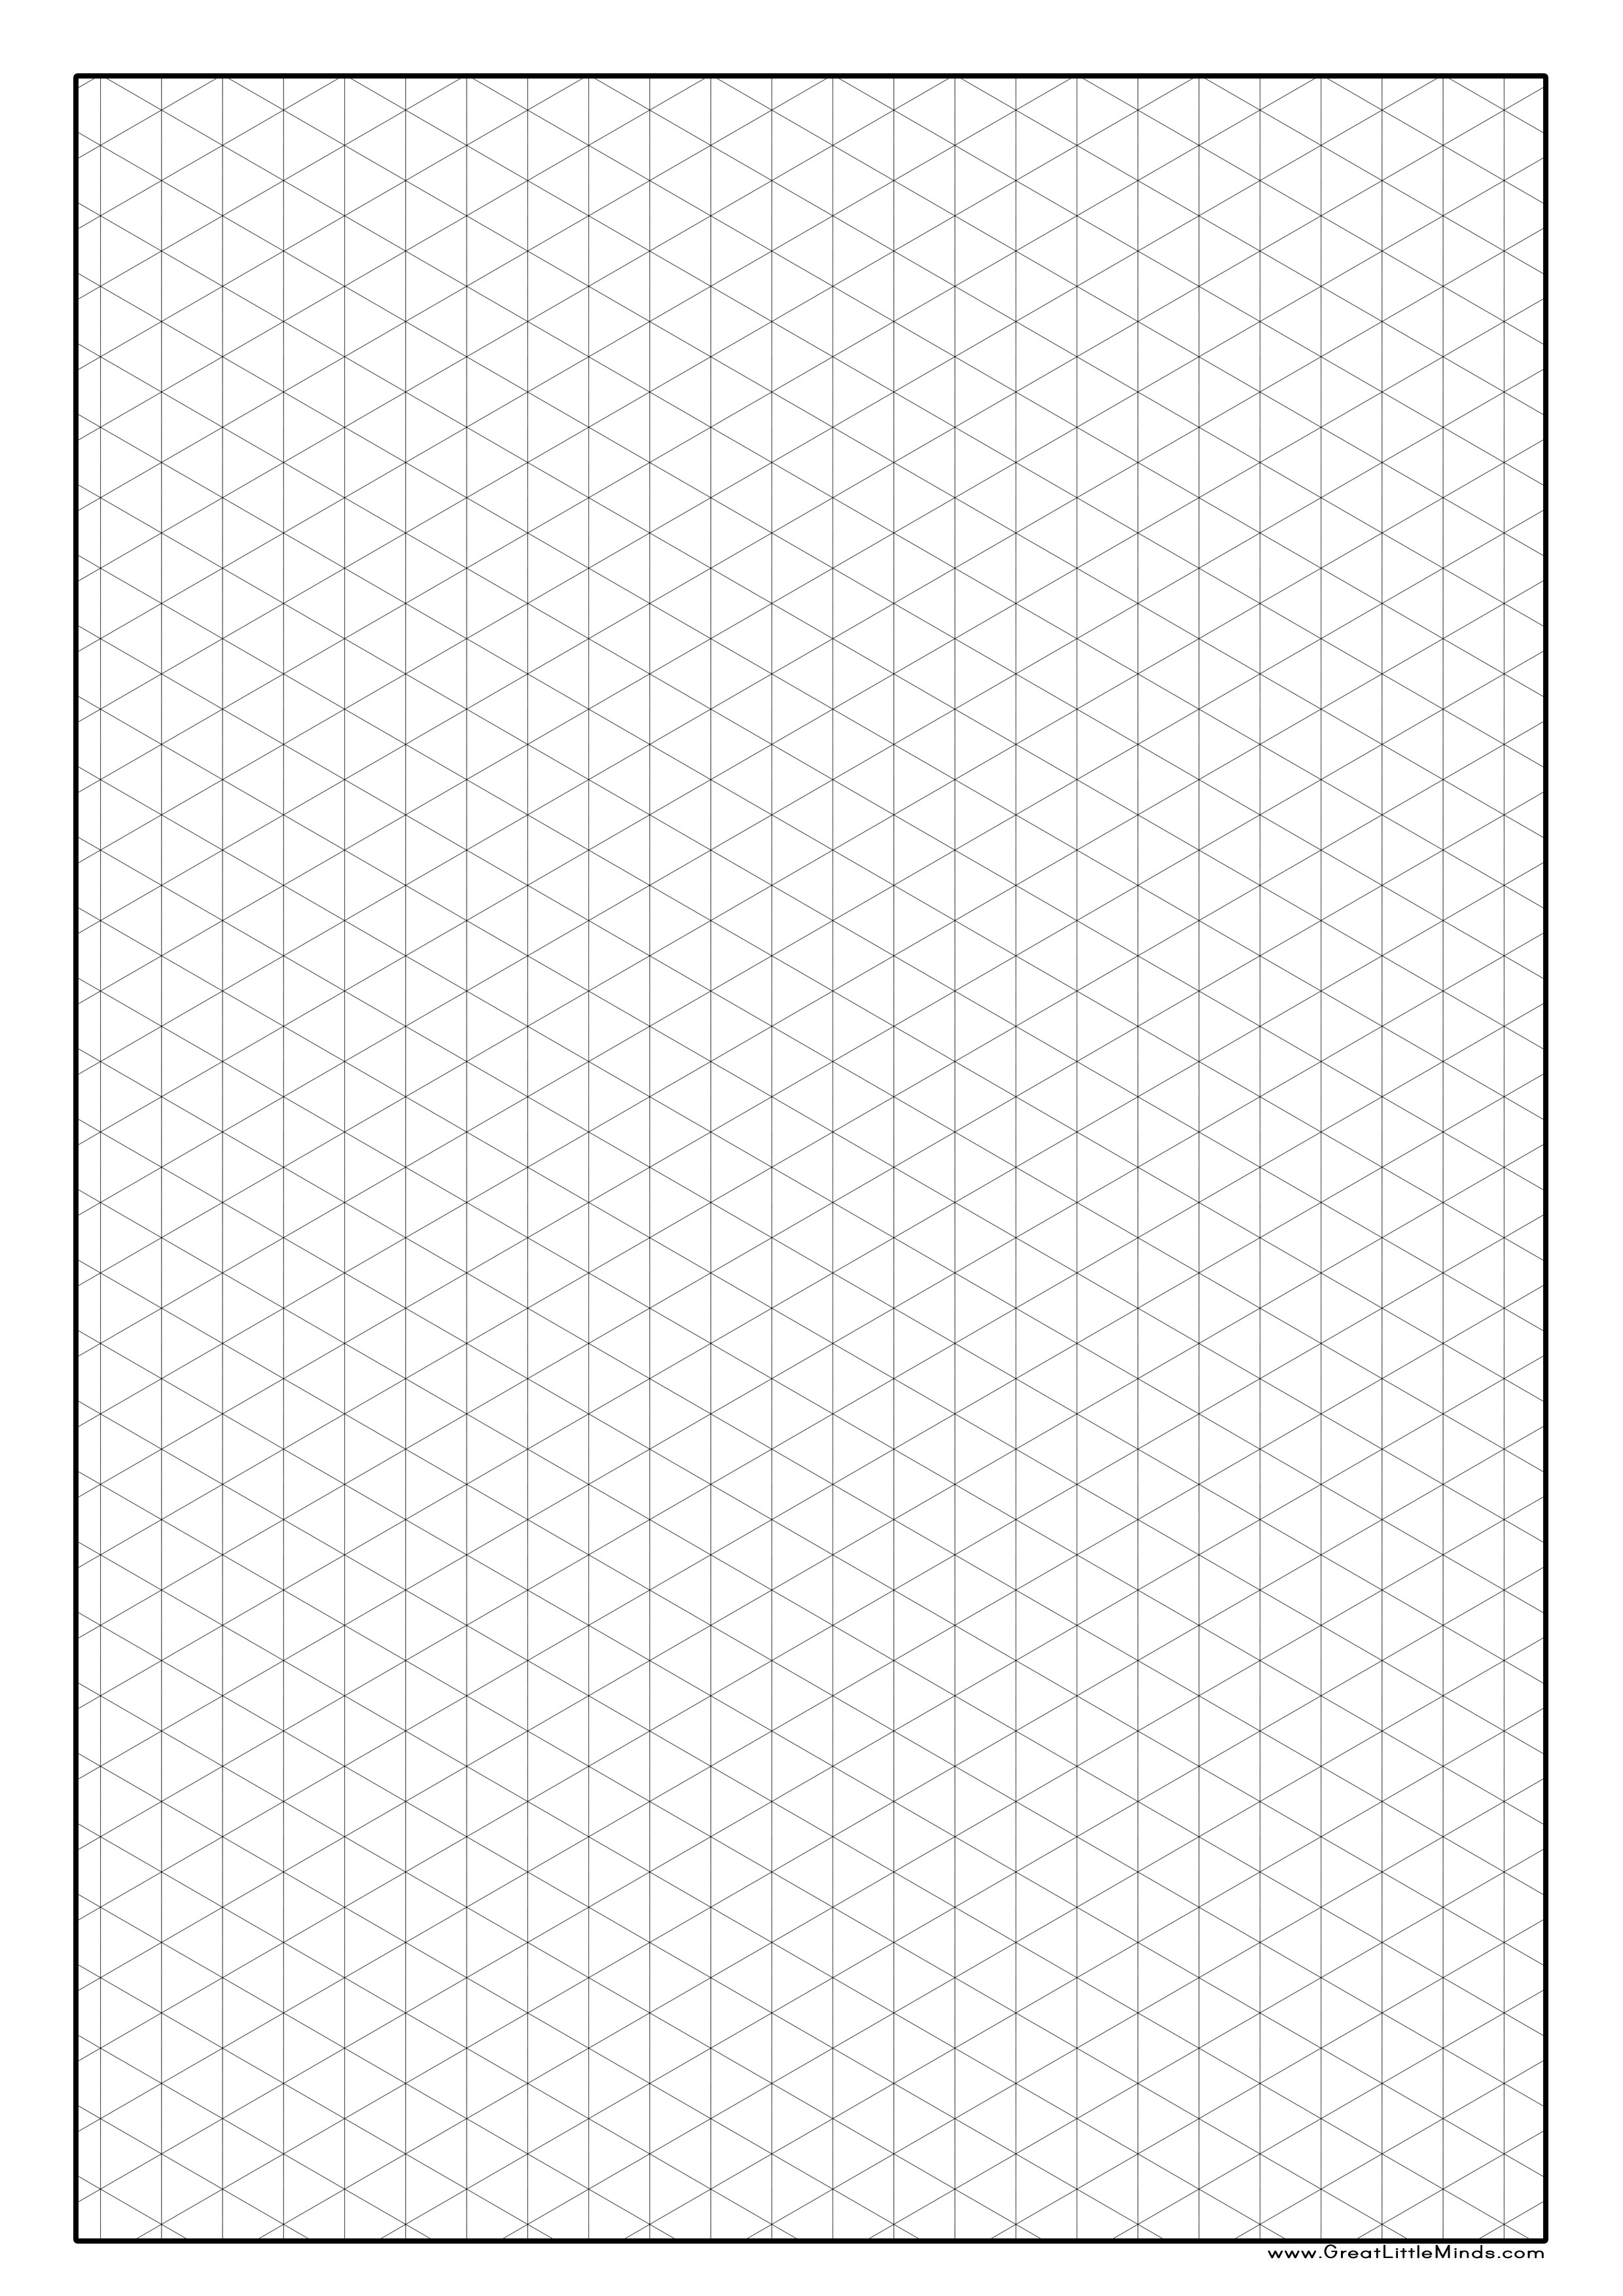 print isometric graph paper